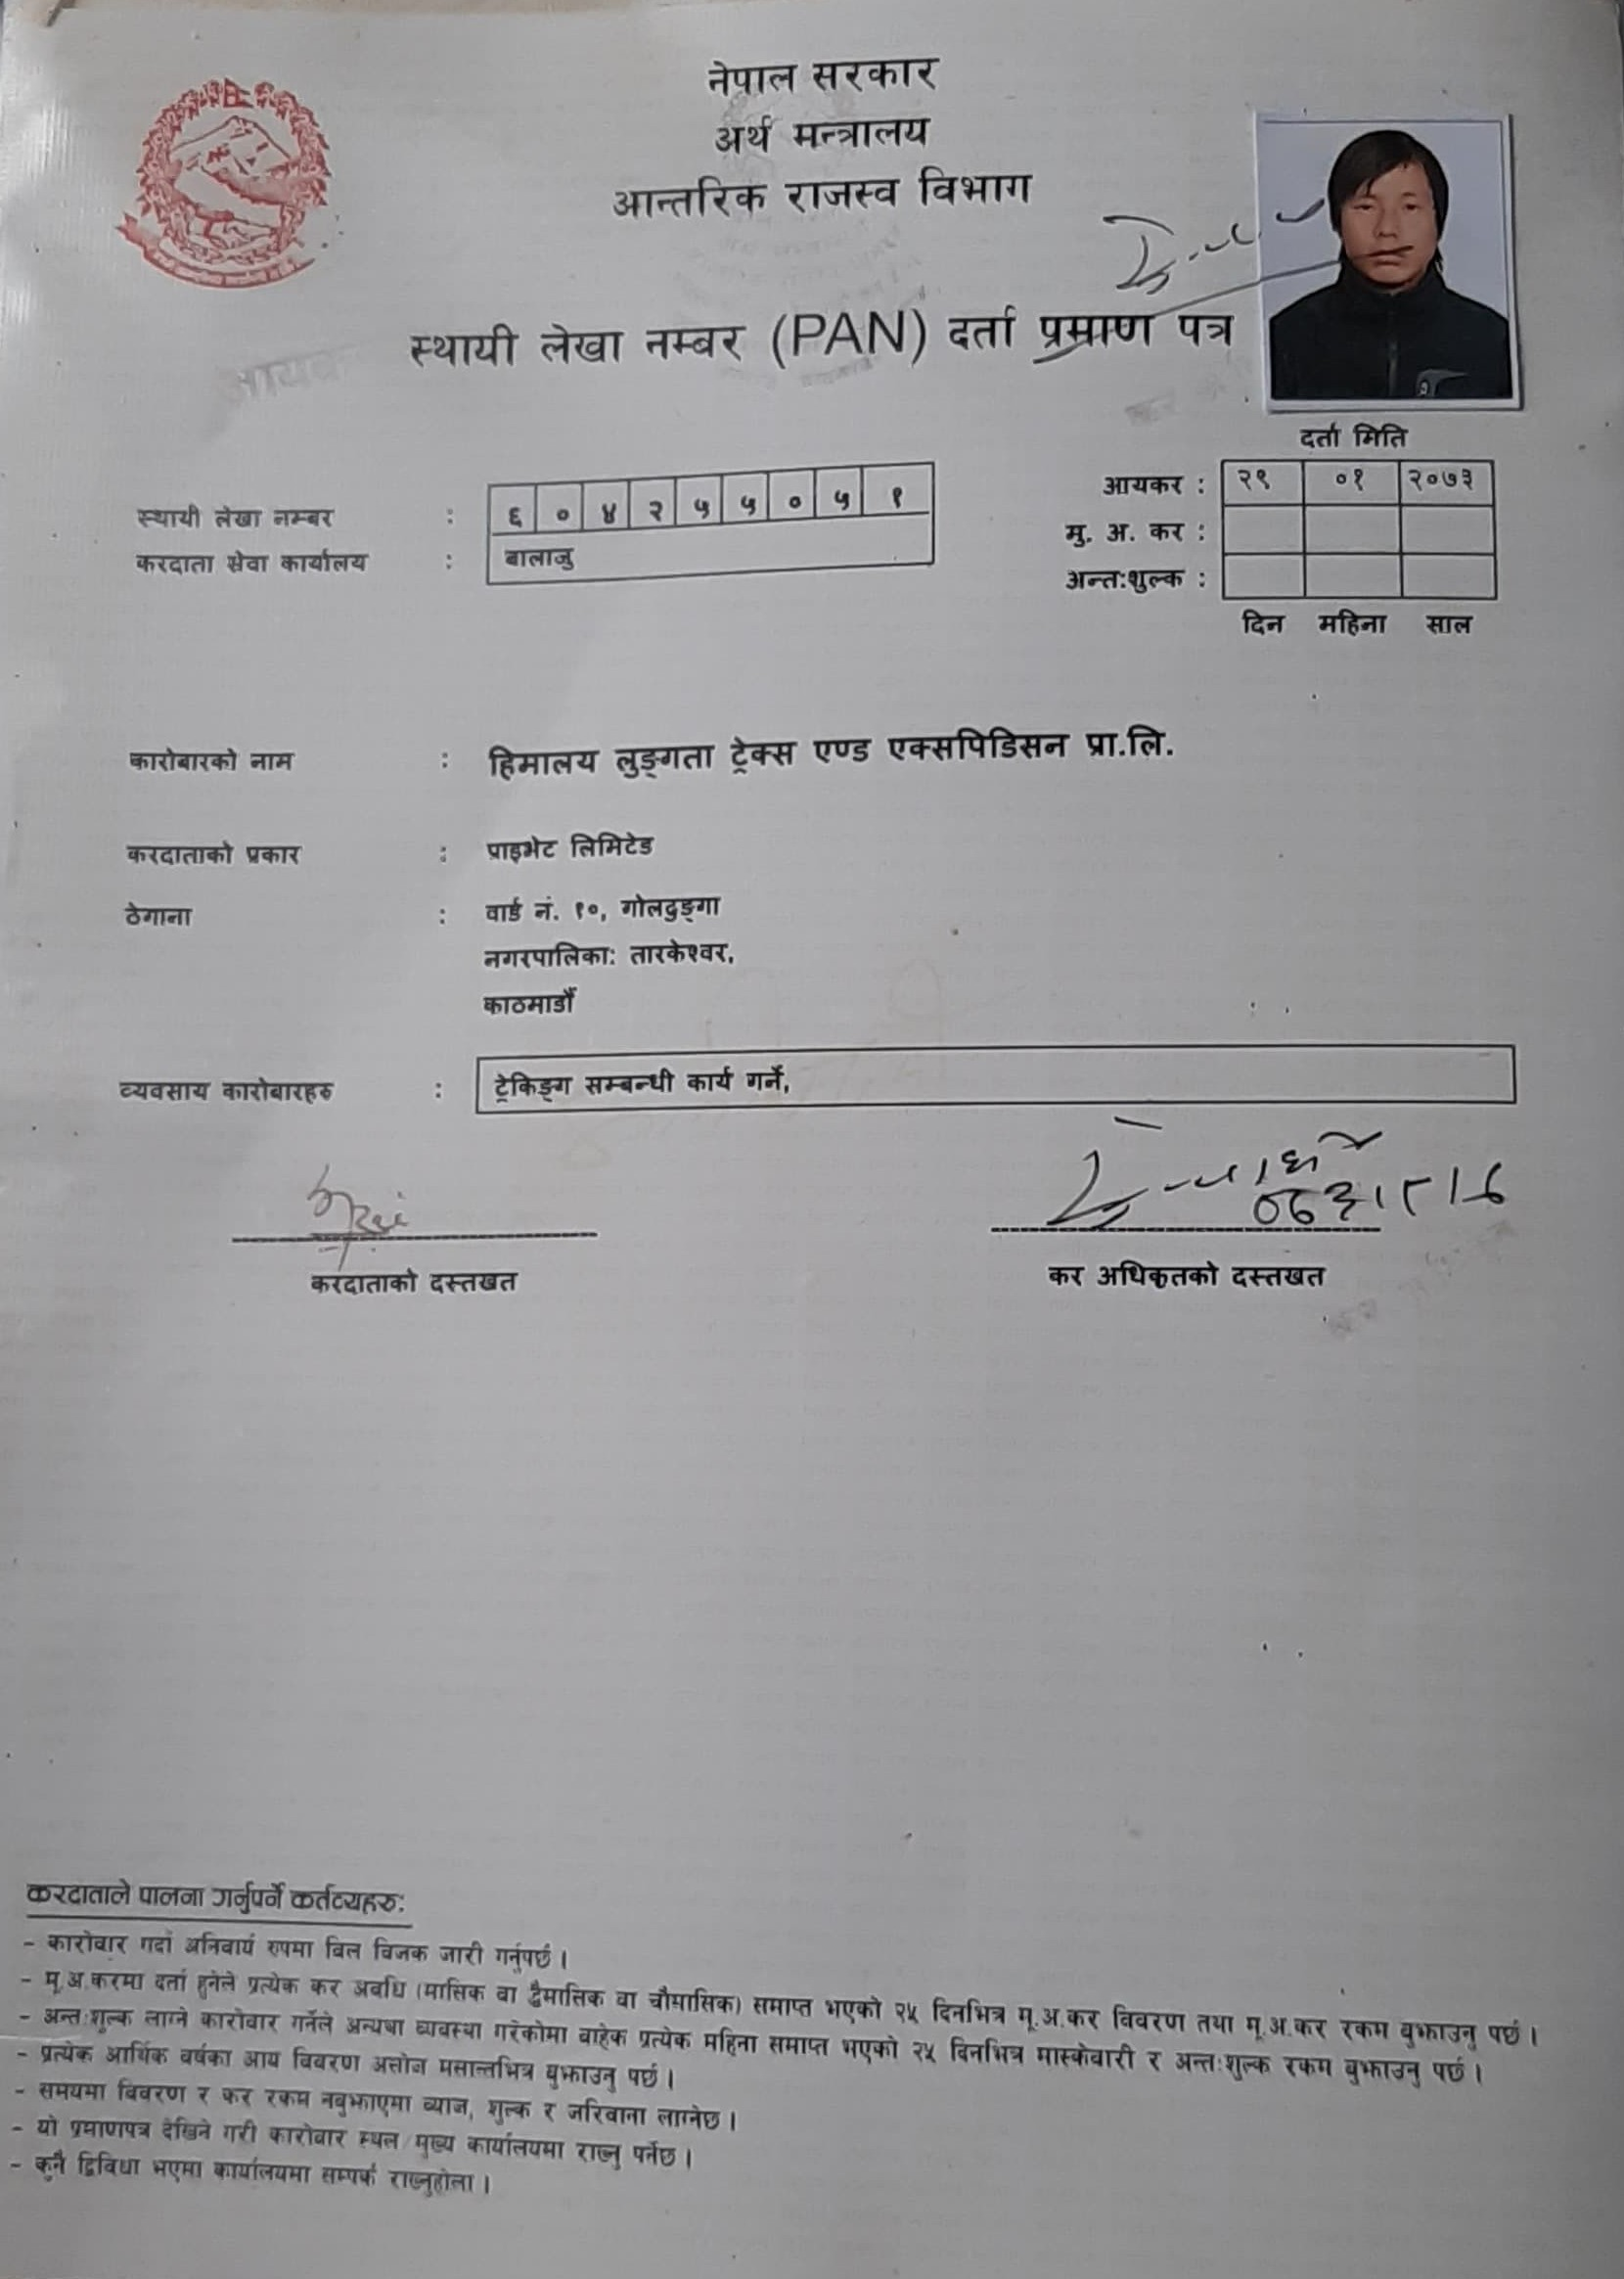 Certificate from the Tax office of Nepal